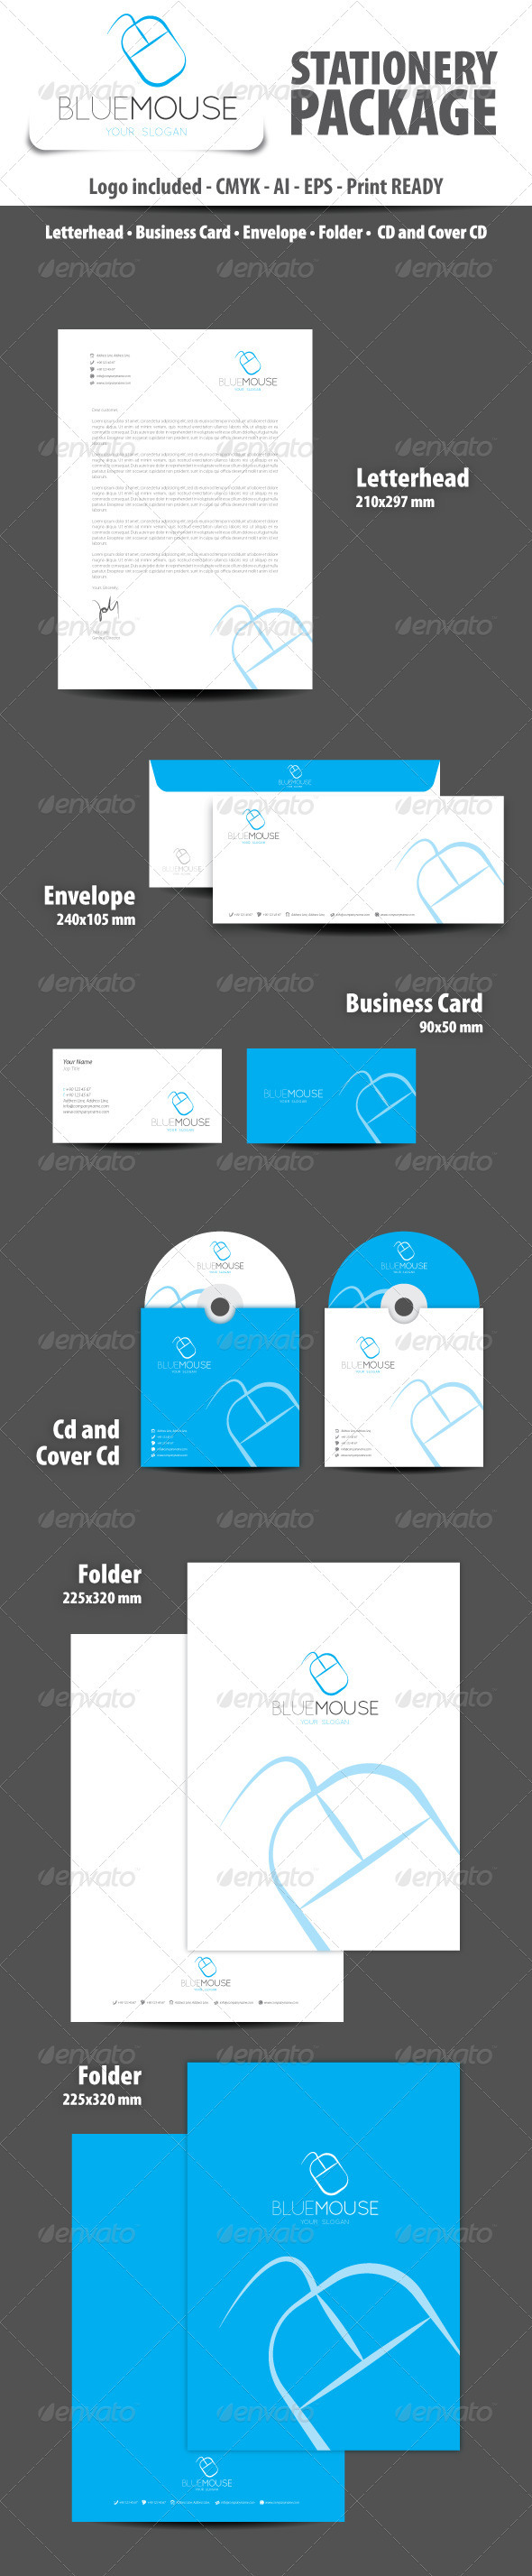 GraphicRiver Blue Mouse Stationery Package 3346910